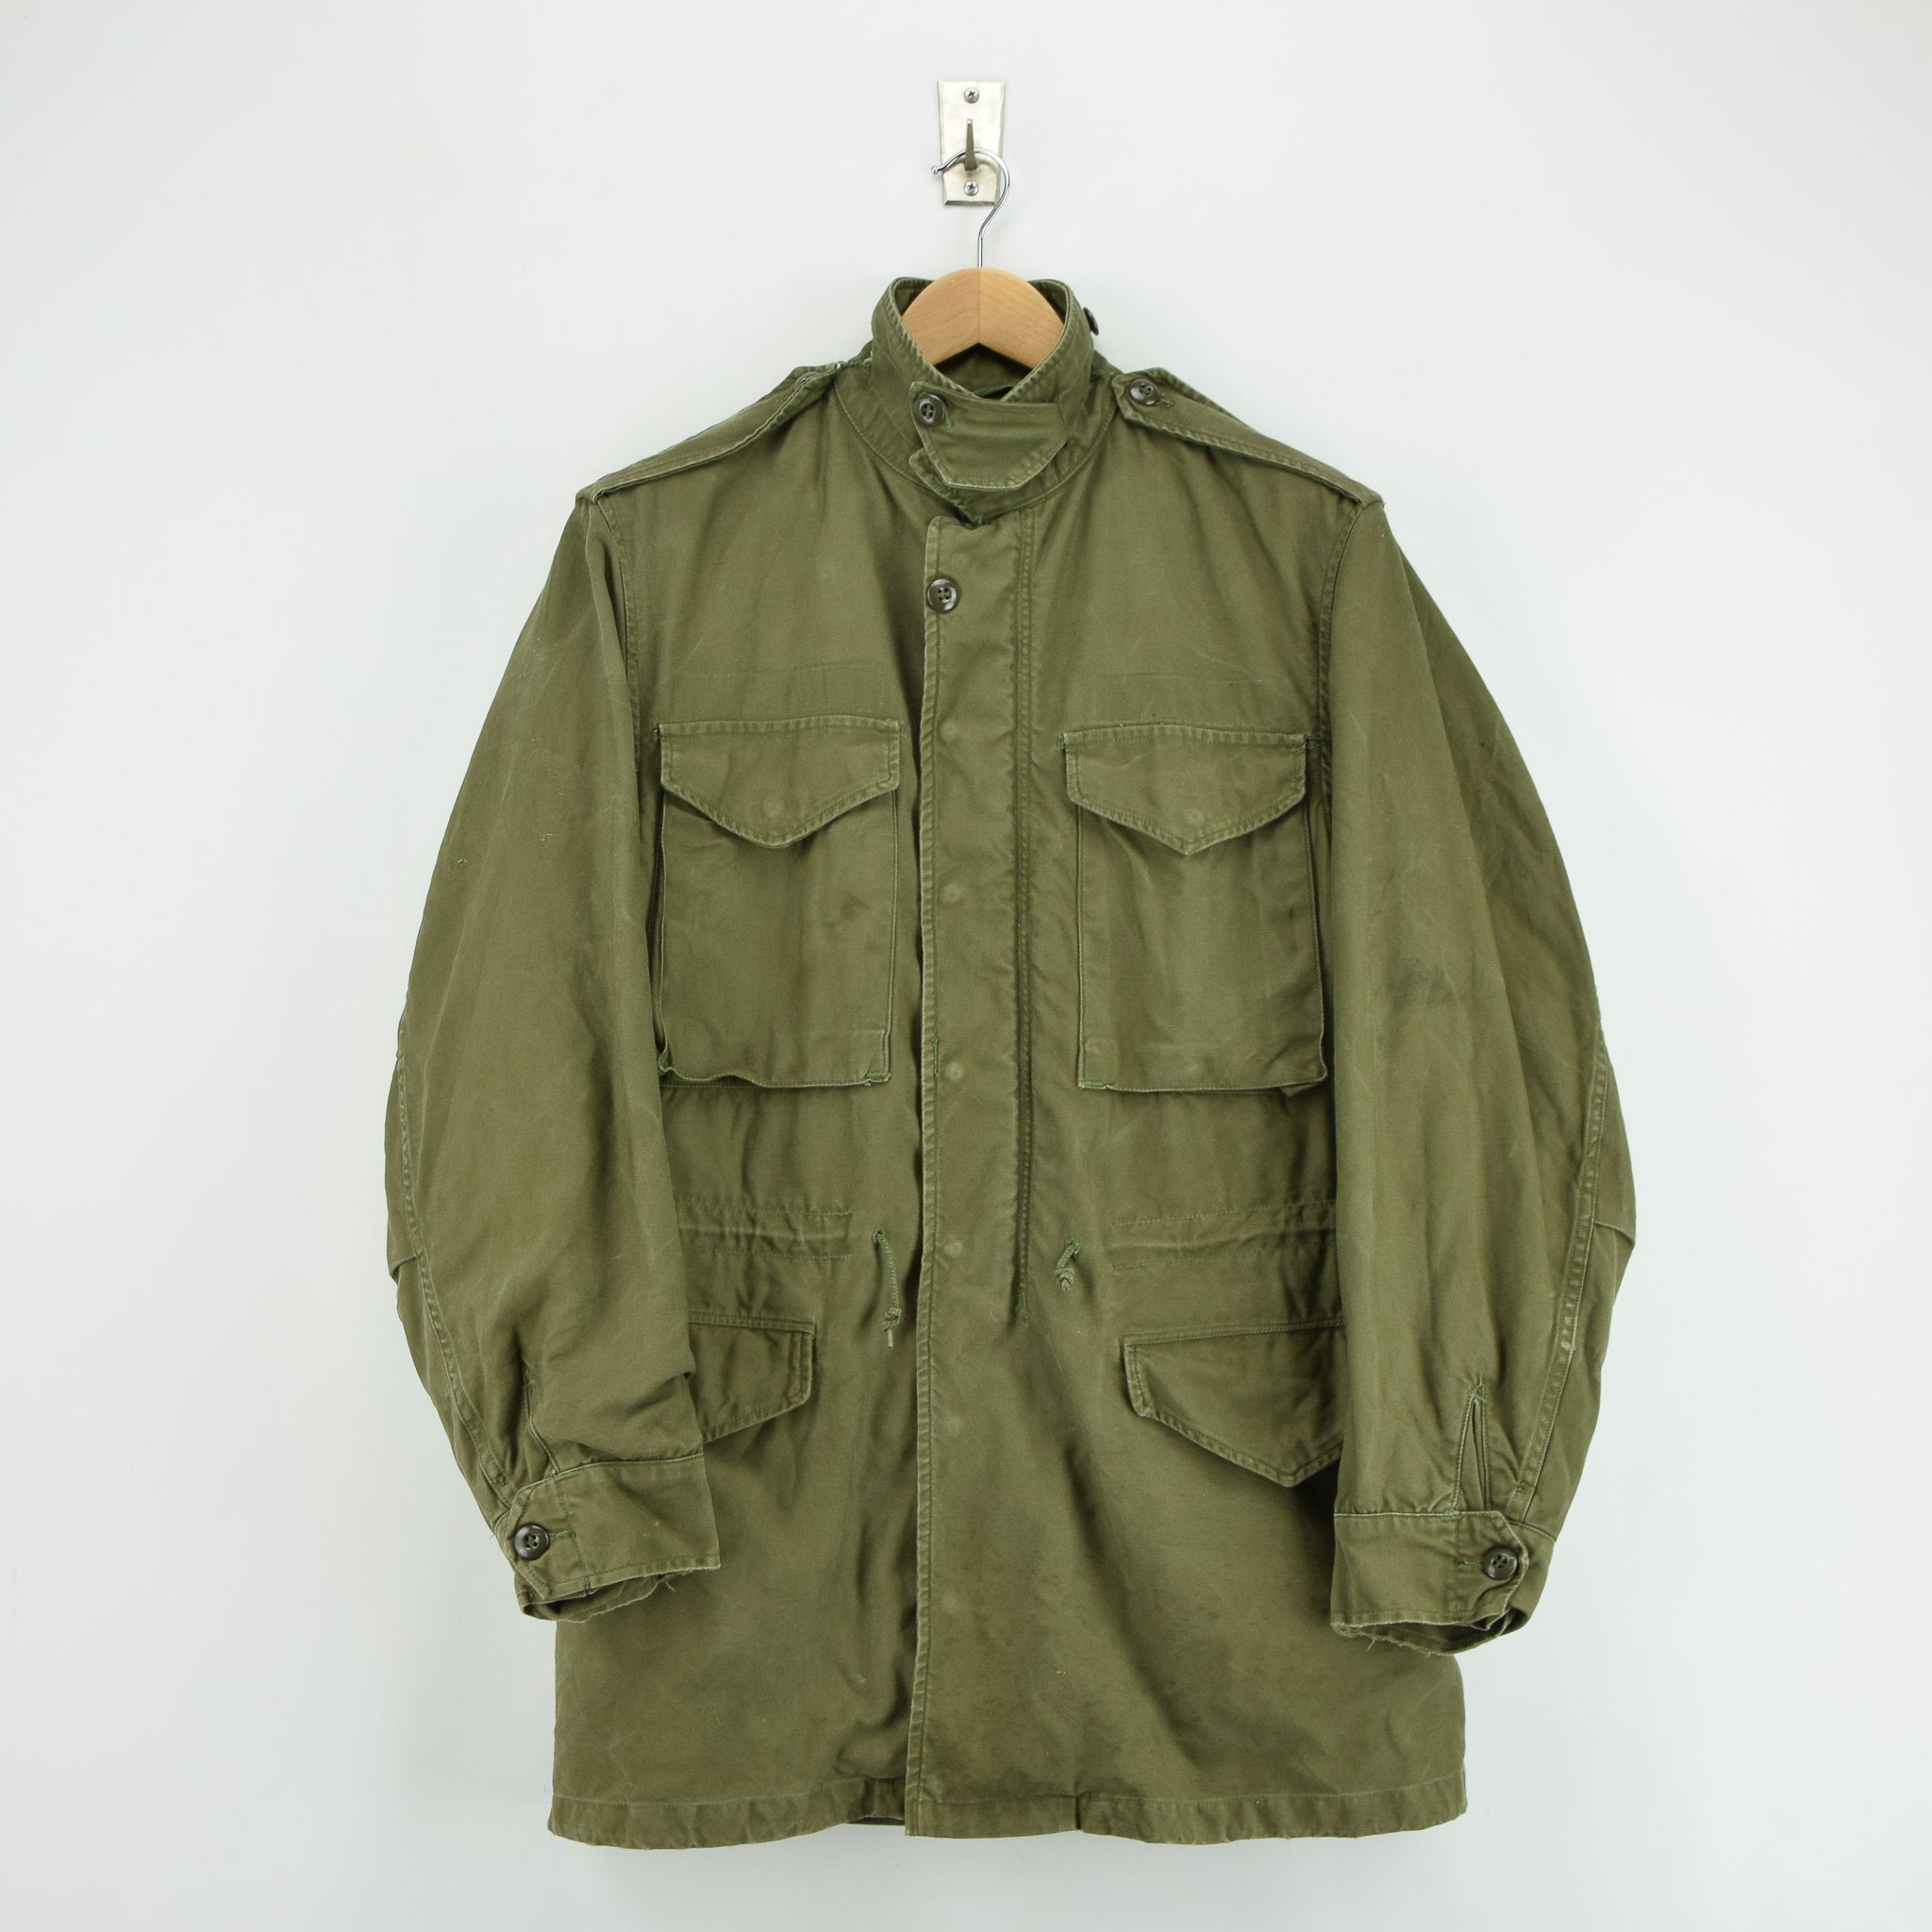 Vintage 50s M-1951 Korean War US Army Field Jacket Olive Green Conmar Zip M front